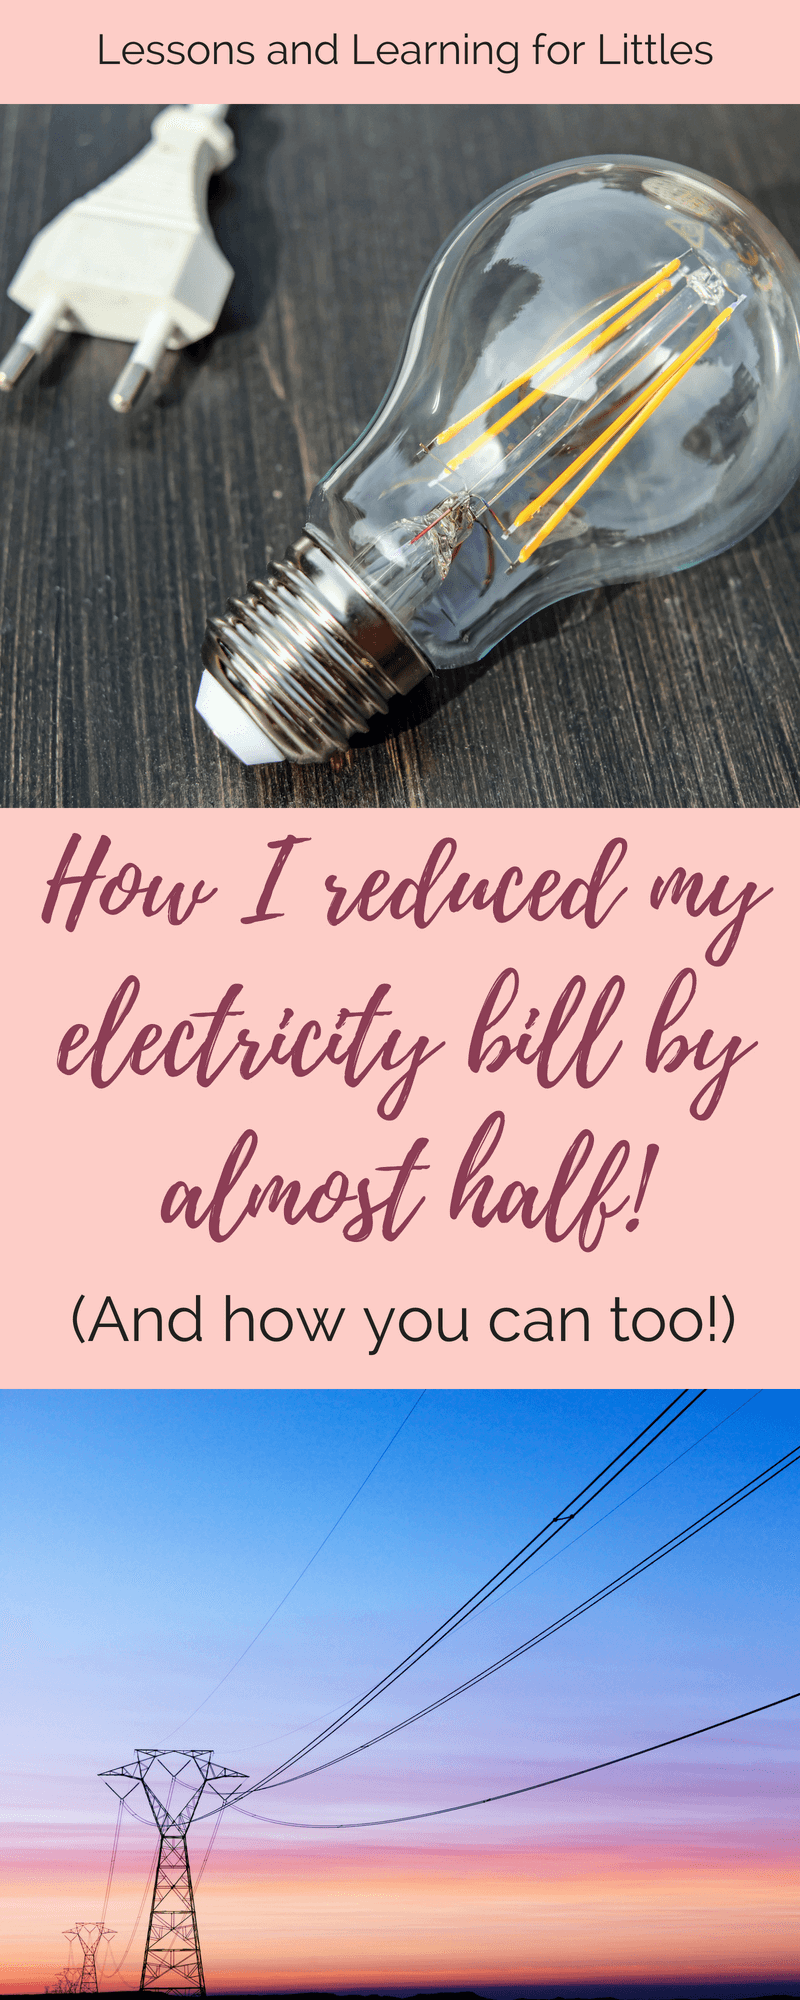 Soaring summer temperatures don't have to mean higher electricity bills! Find out how I reduced my electricity bill WHILE getting to spend more quality time with my kids. It's super simple and you can get started today! #familybonding #motherhood #budgeting #ohmhour